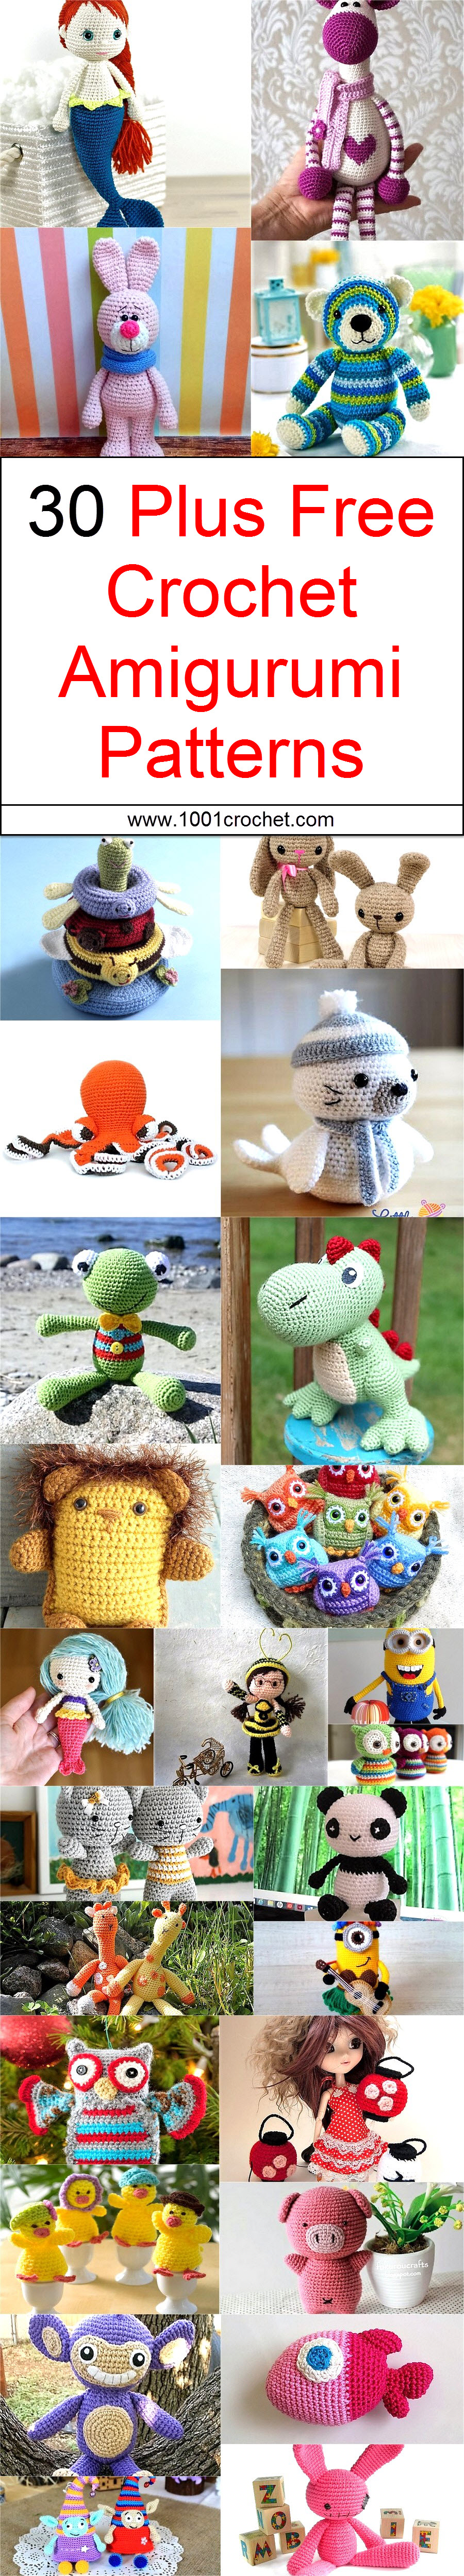 30-plus-free-crochet-amigurumi-patterns